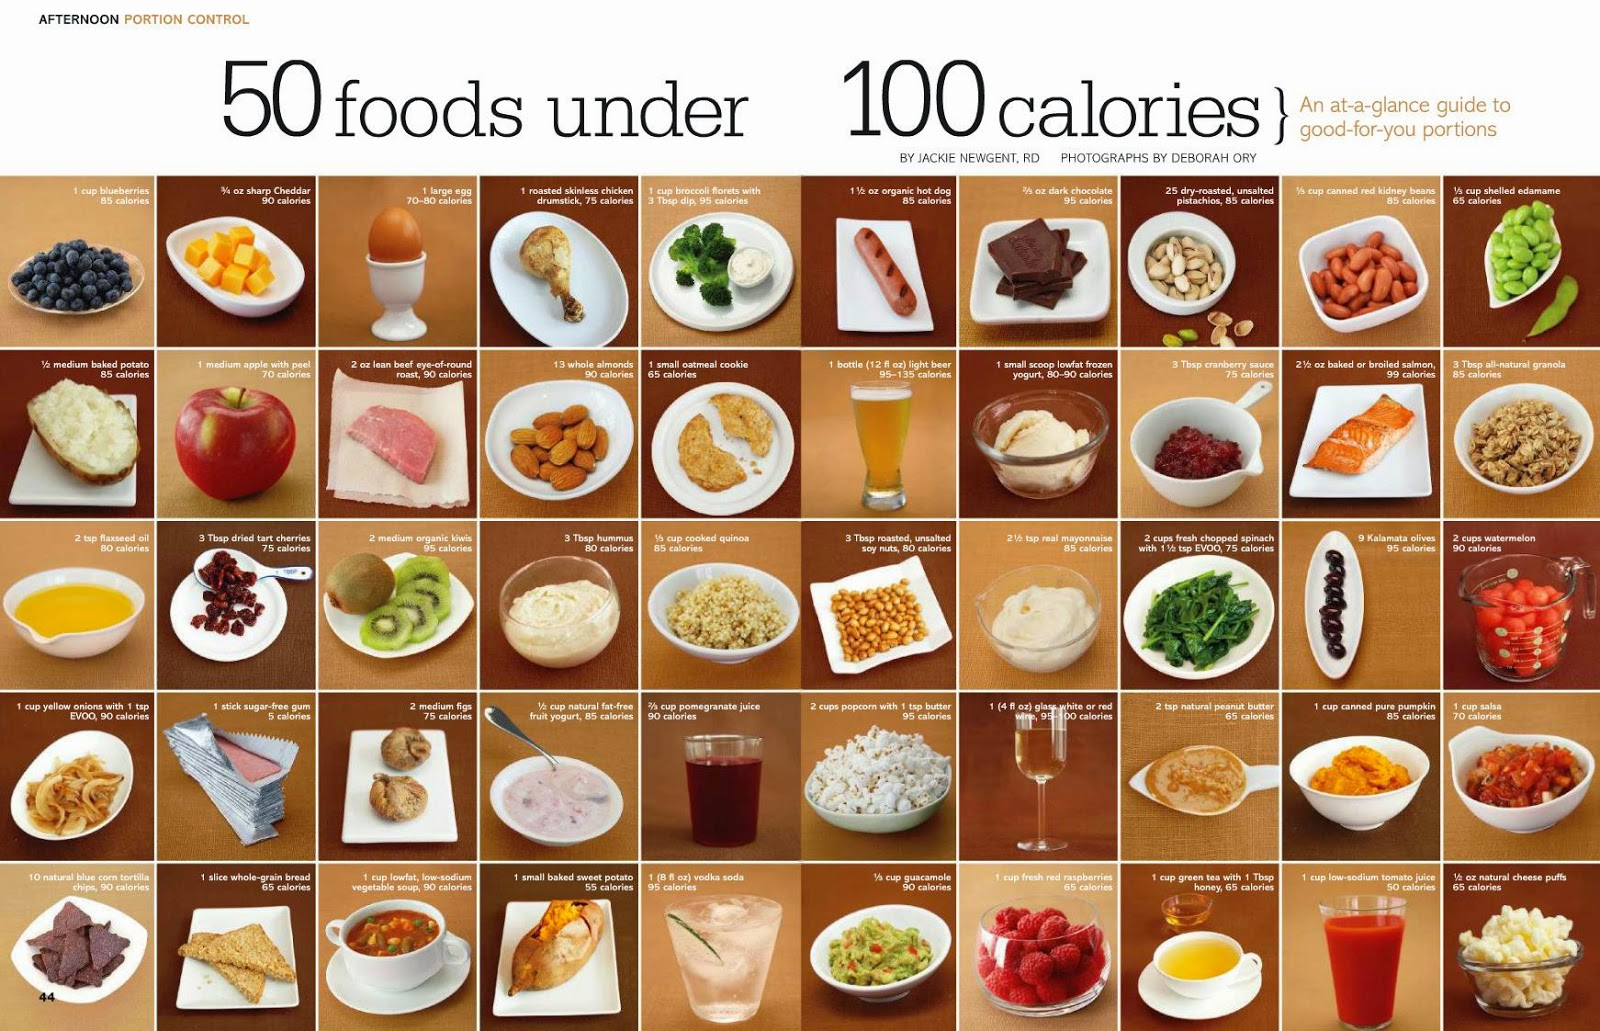 Healthy Foods and Snacks under 100 Calories